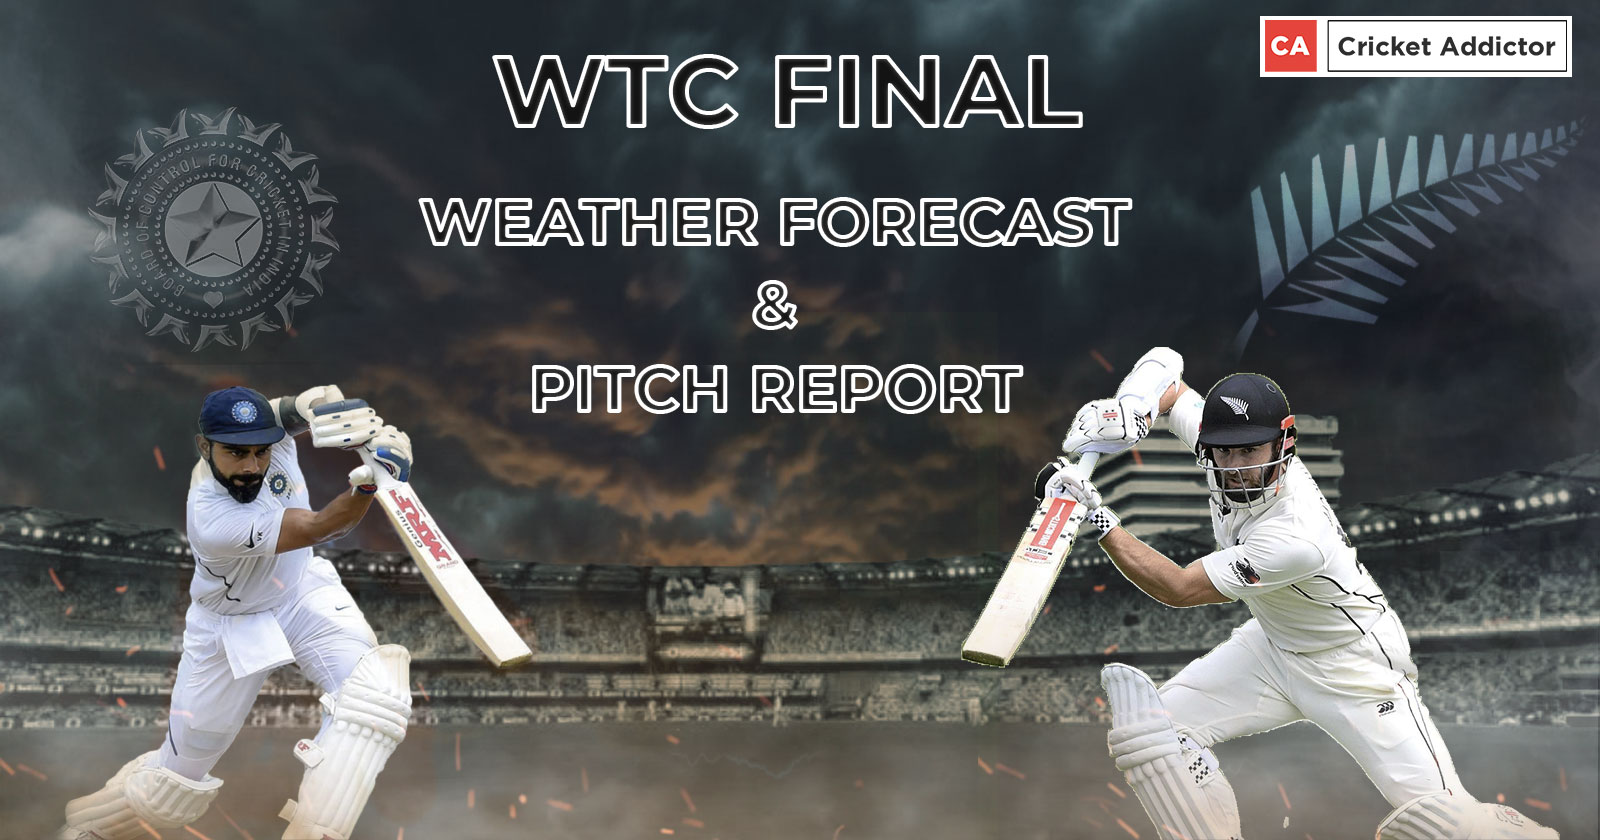 India vs New Zealand WTC Final: Weather Forecast And Pitch Report